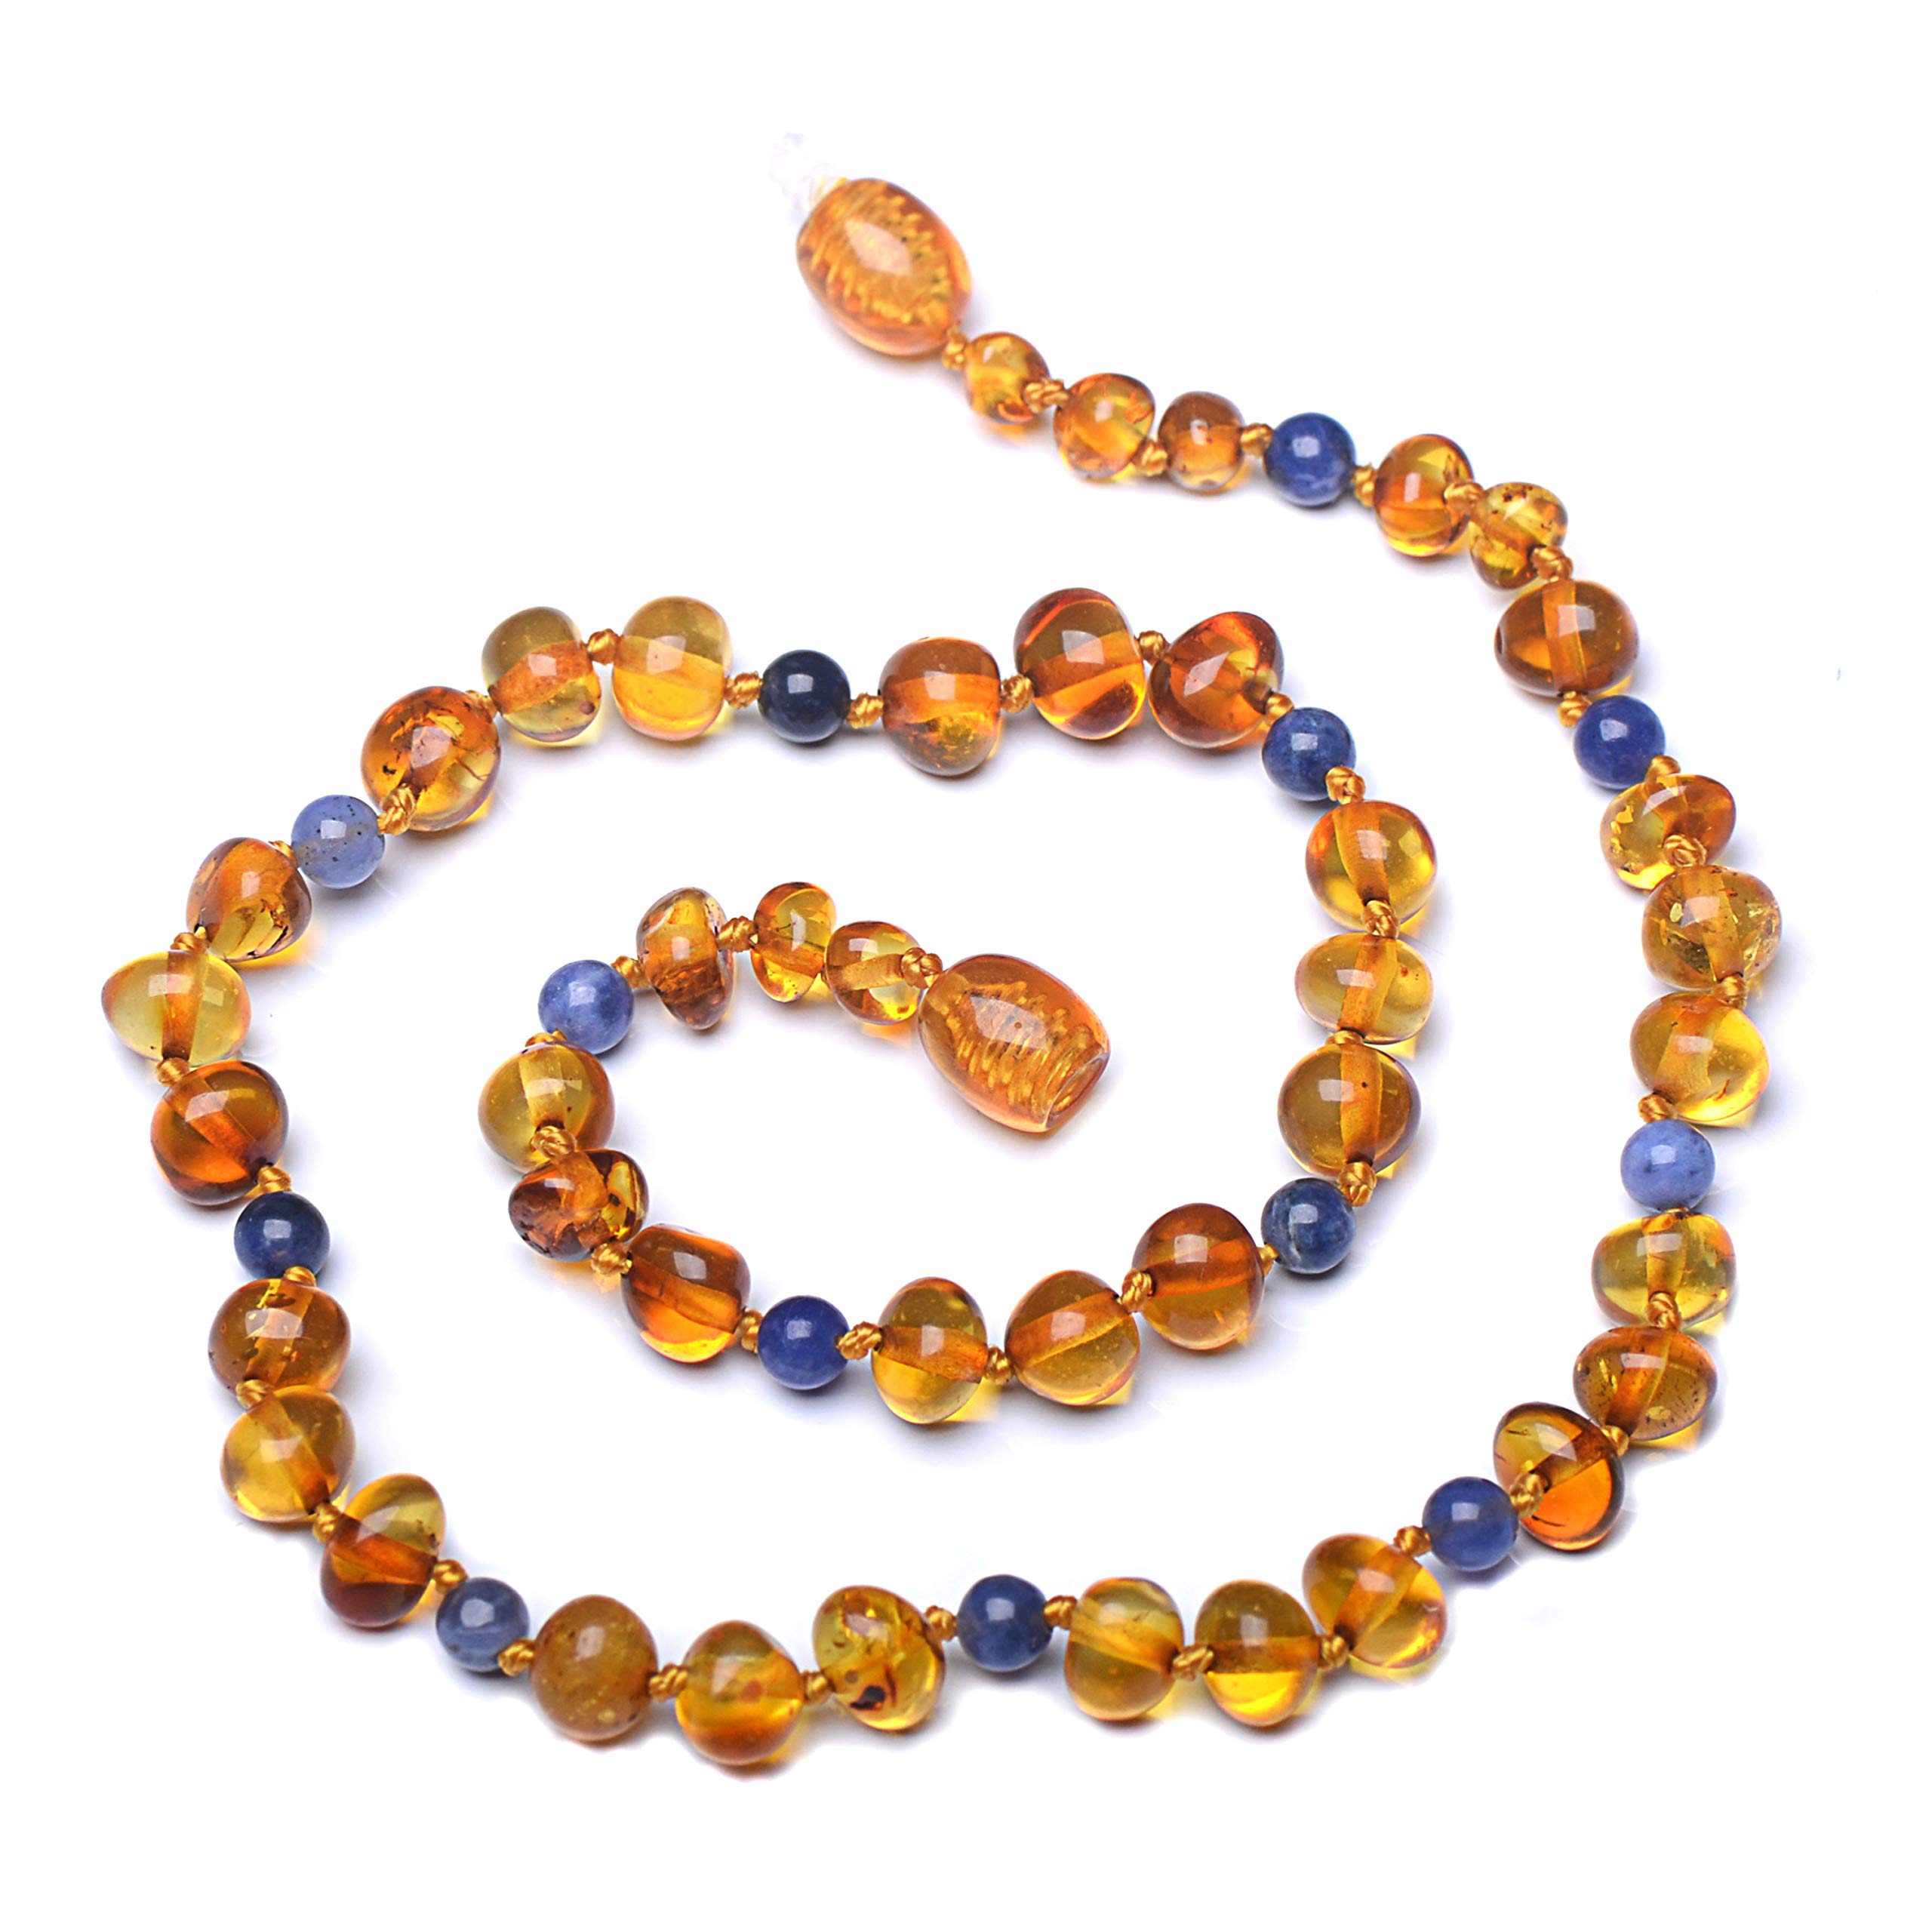 Baltic Amber Teething Necklace for Baby with Sodalite - 100% Natural Certified Amber Polished Beads - Natural Analgesic - Pain Relief - Safety Knotted - Highest Quality Jewelry for Kid (Sodalite 14'') by Vintage Amber